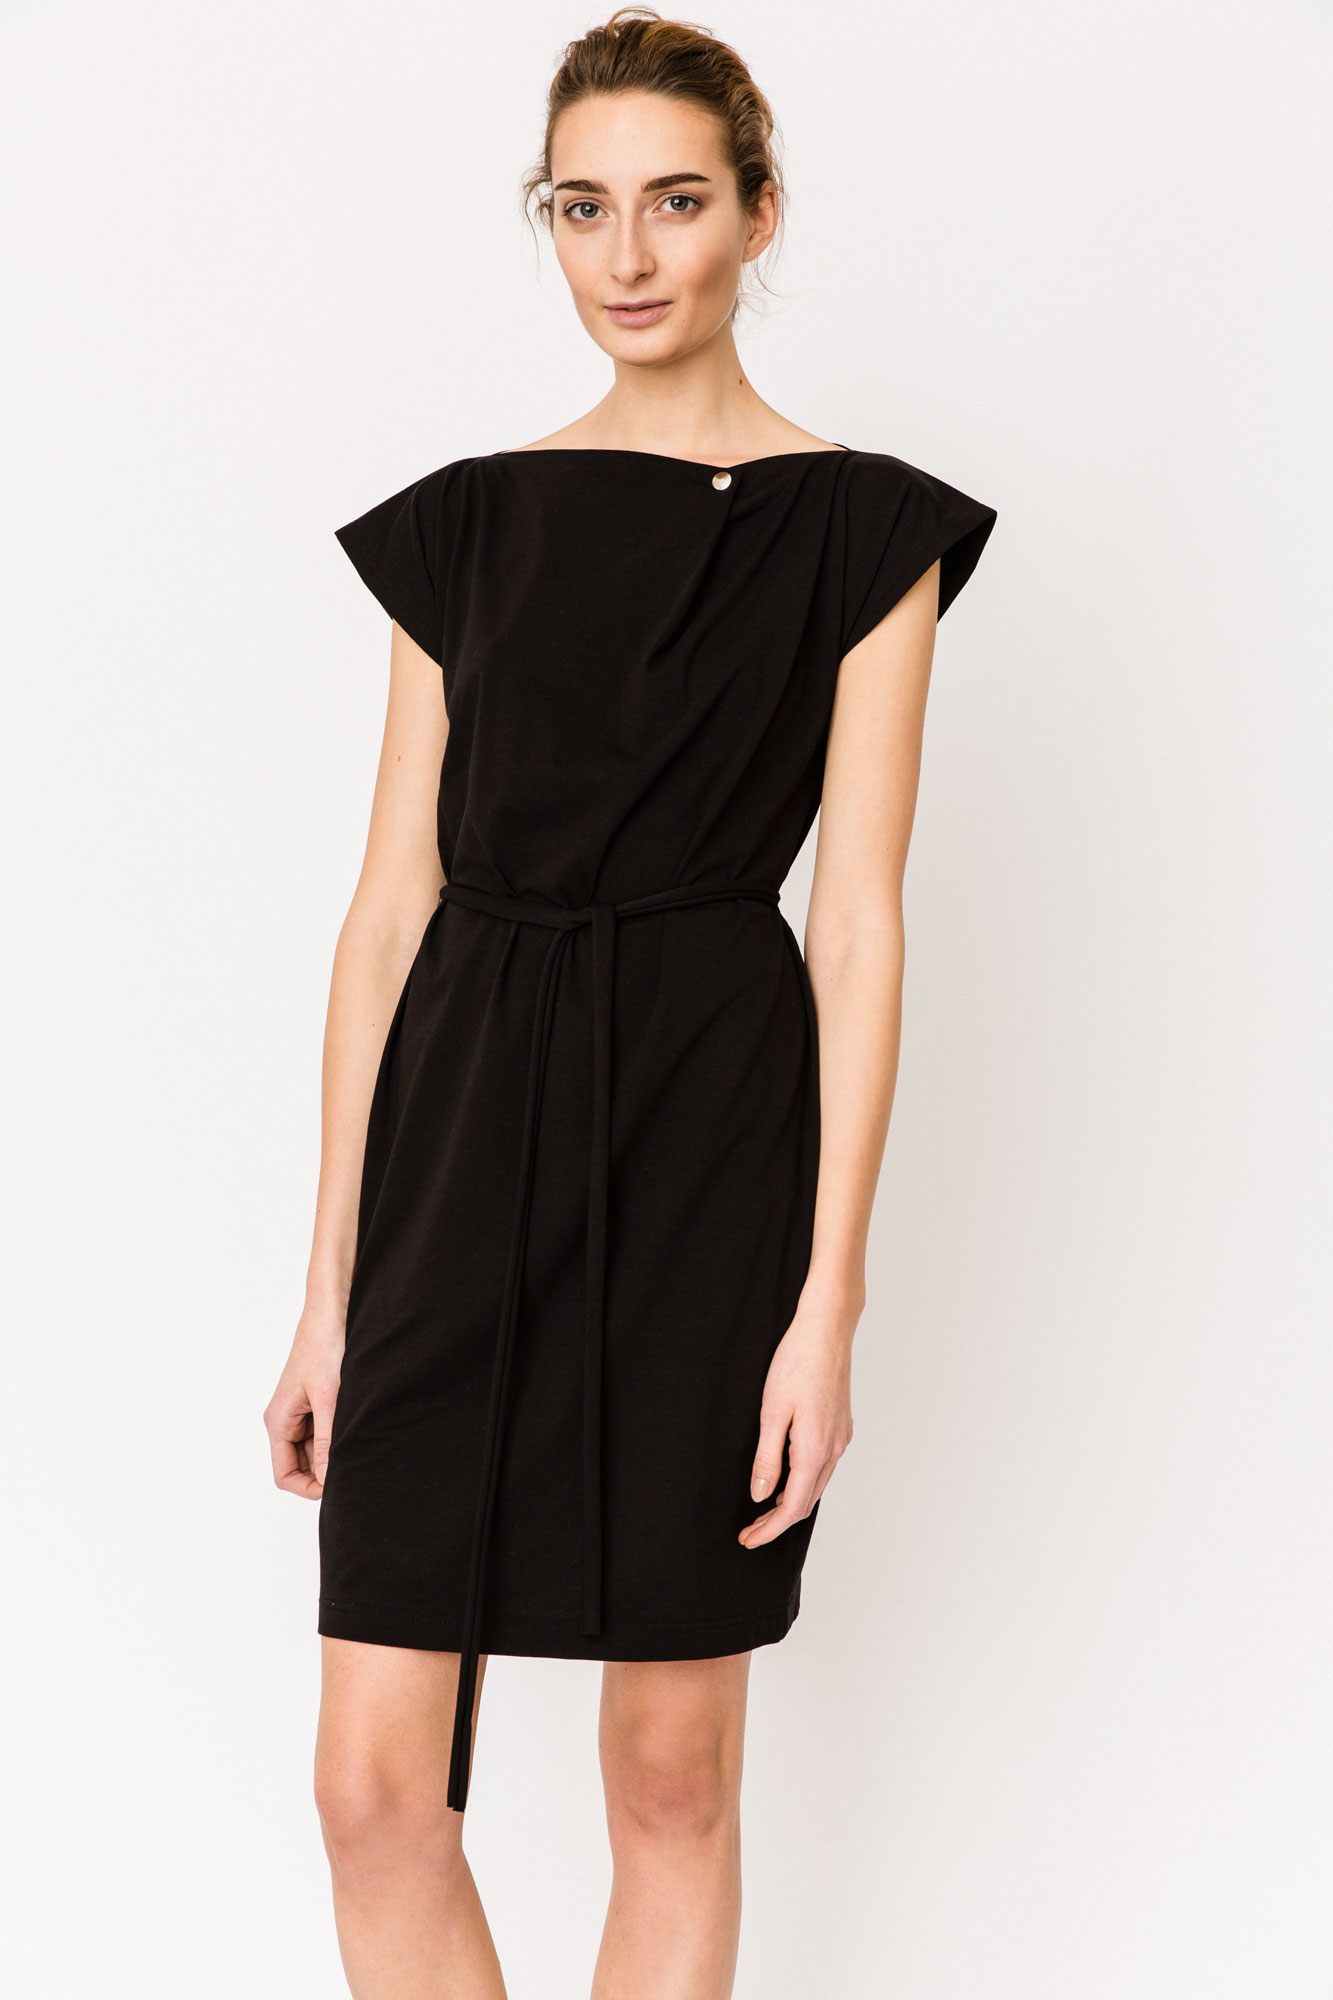 WRNS_BASICS_Bodicek-Dress_05